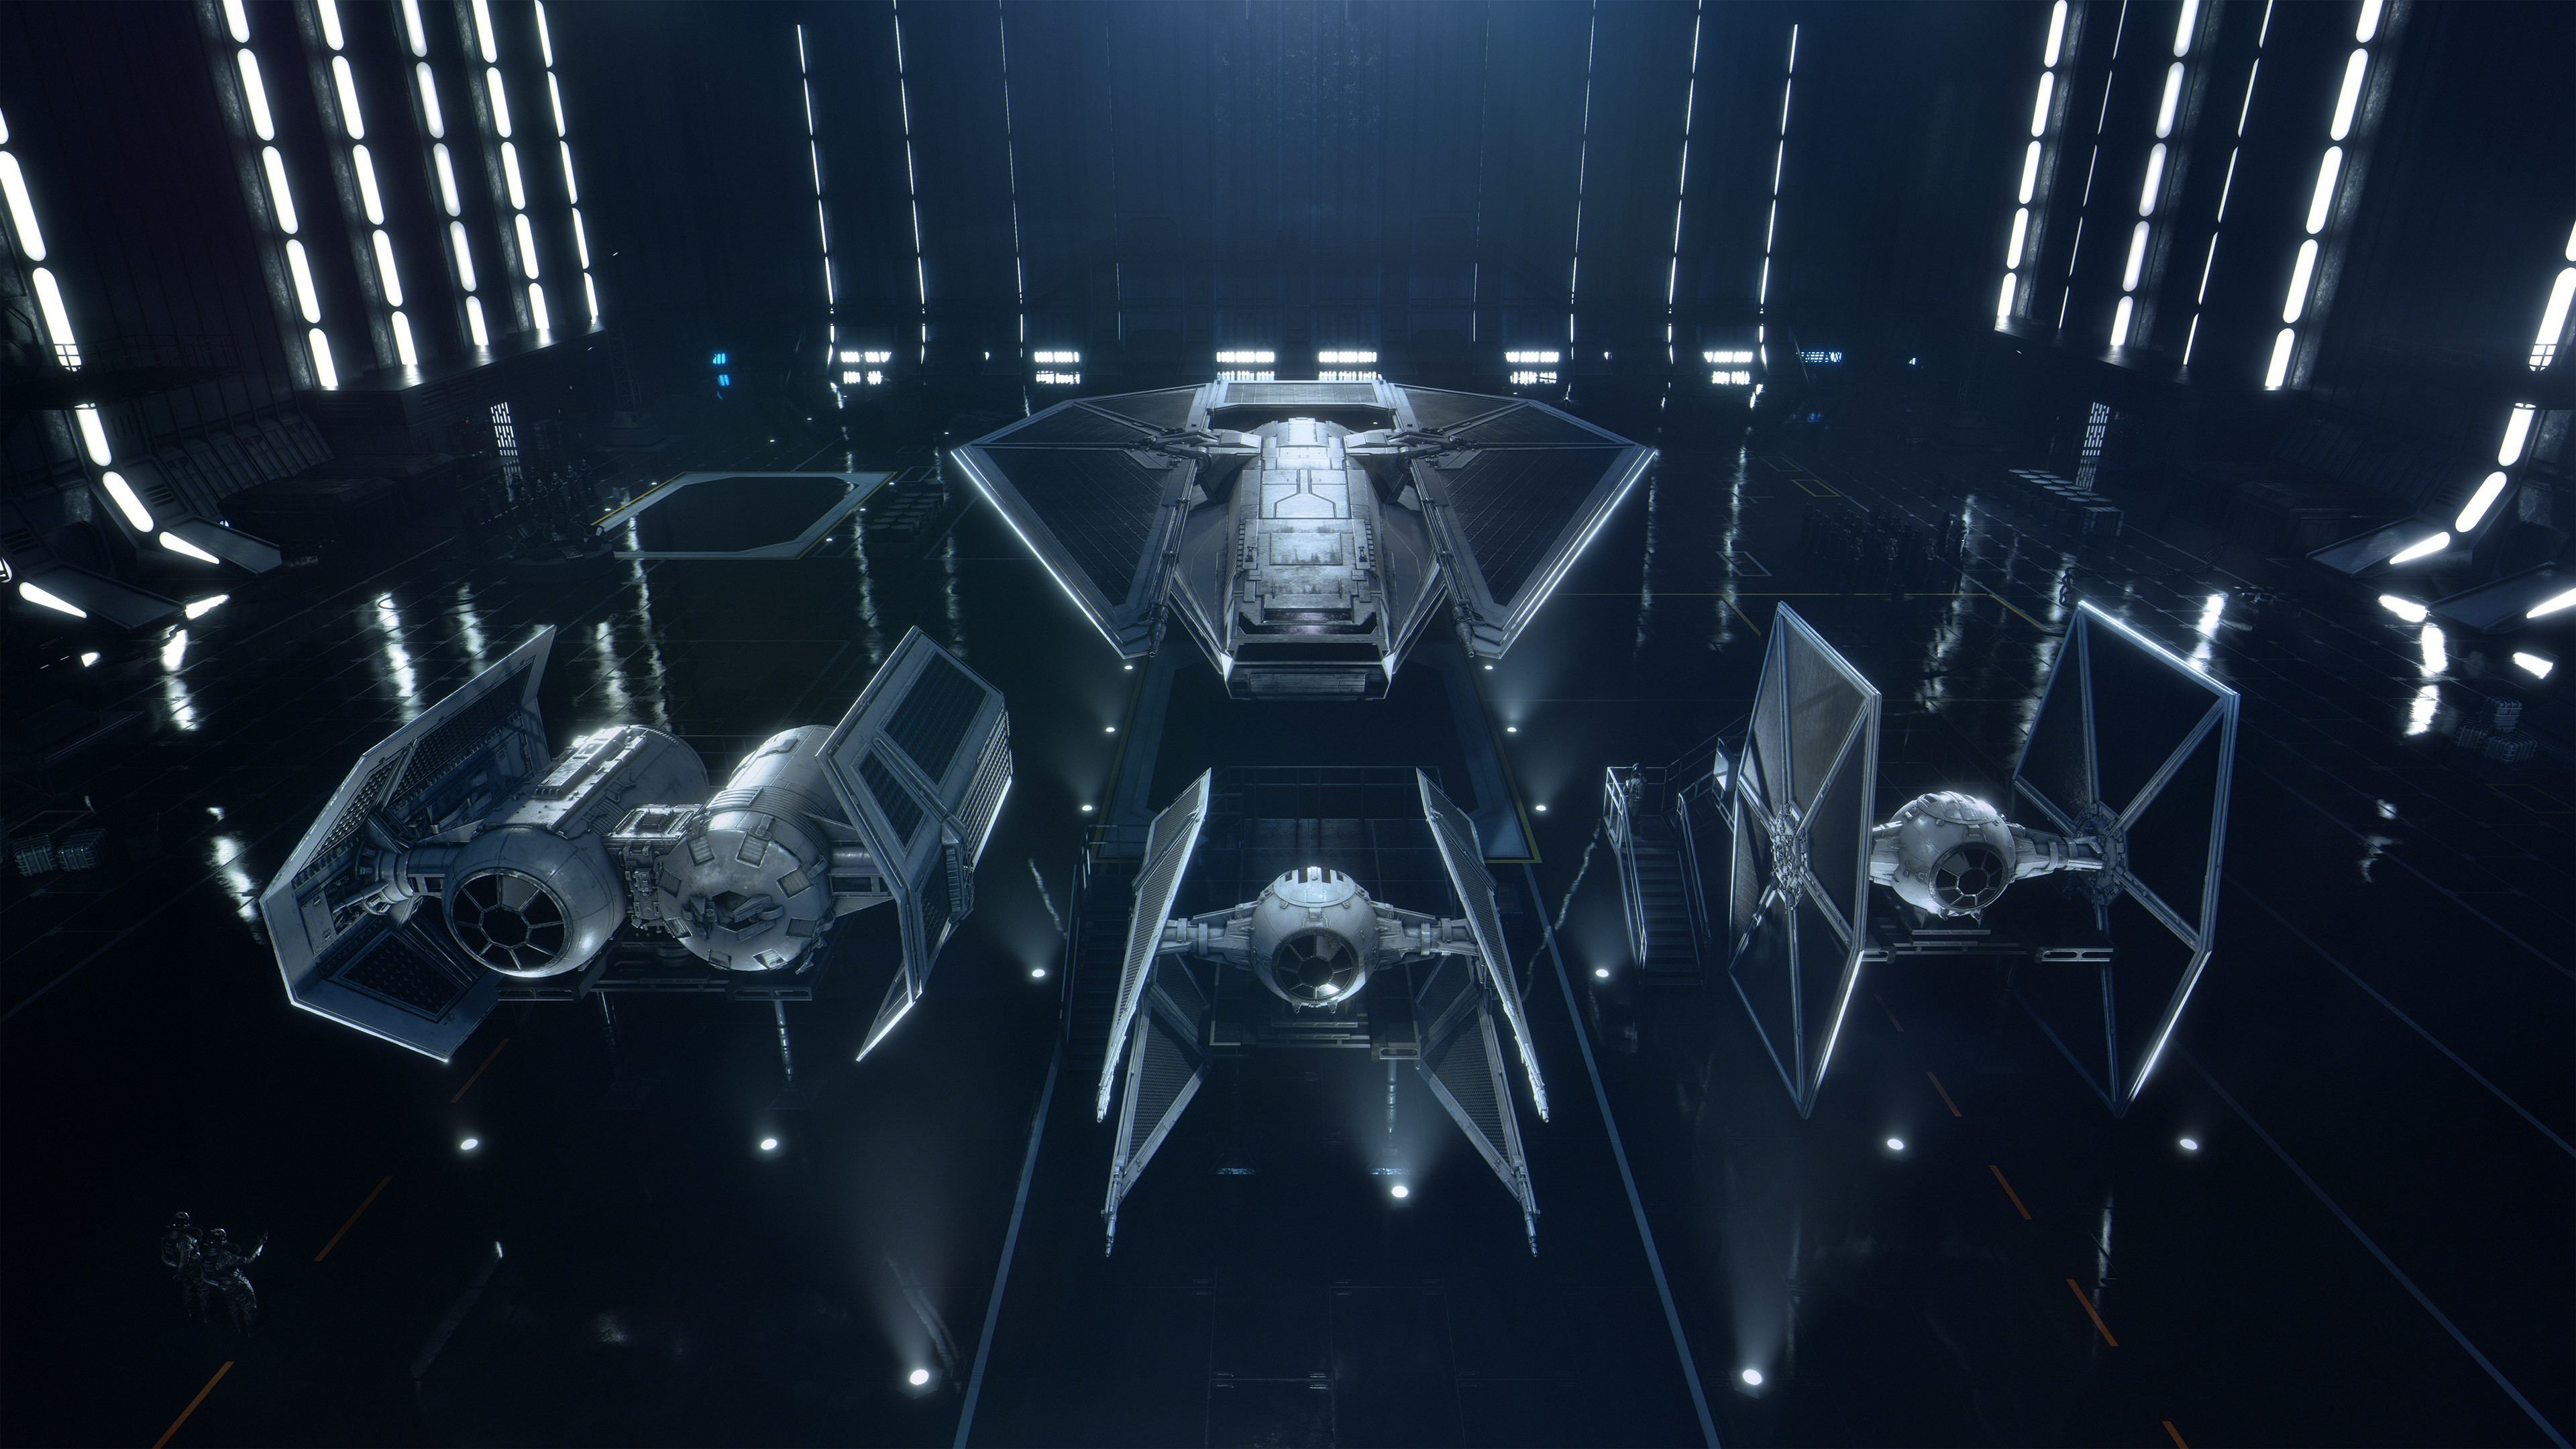 4k star wars squadrons